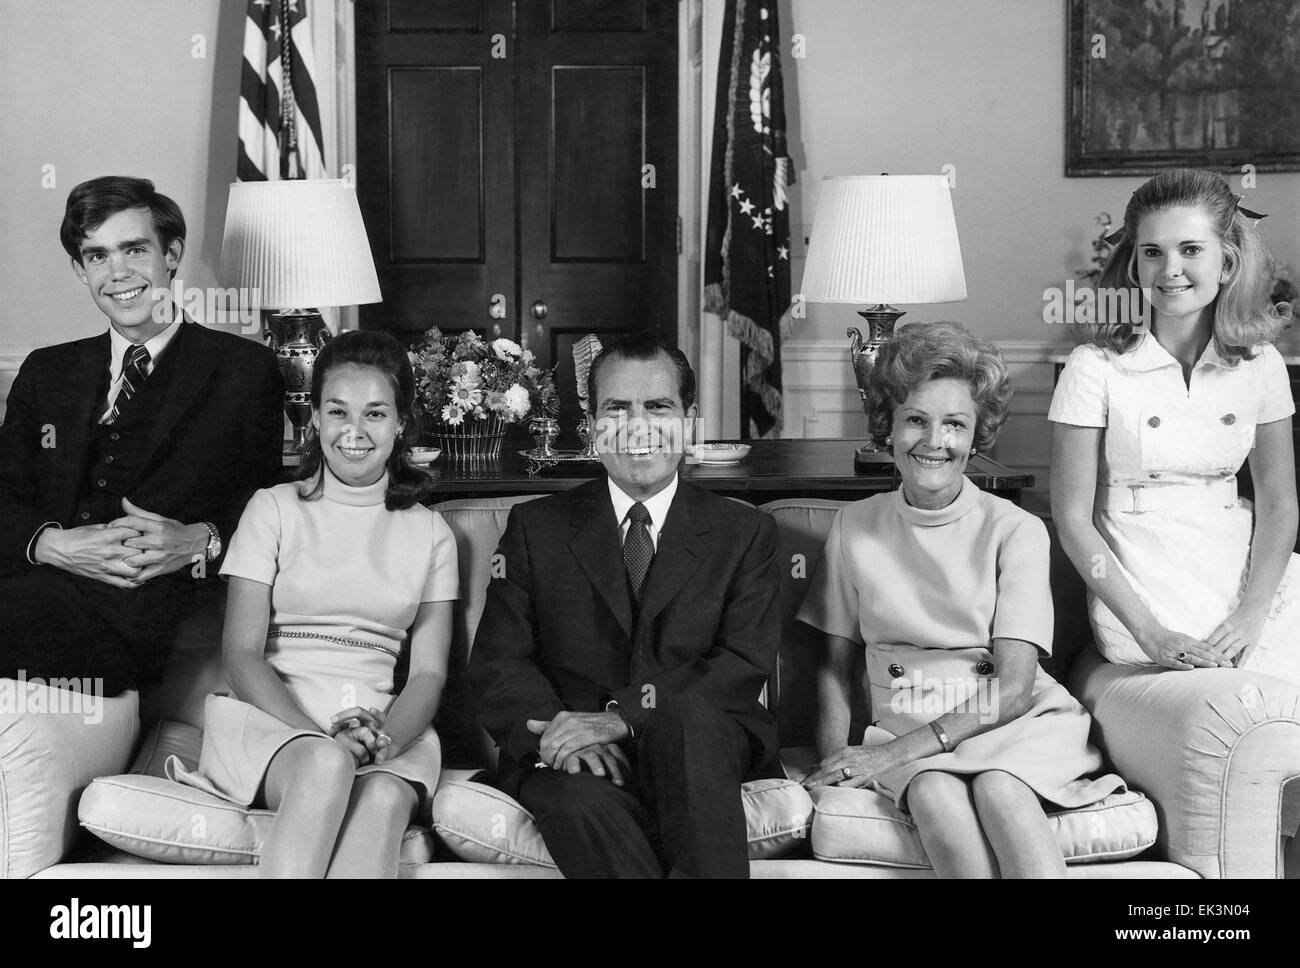 U.S. President Richard Nixon (center) with son-in-law David Eisenhower Julie Nixon Eisenhower Pat Nixon Tricia Nixon - Stock Image